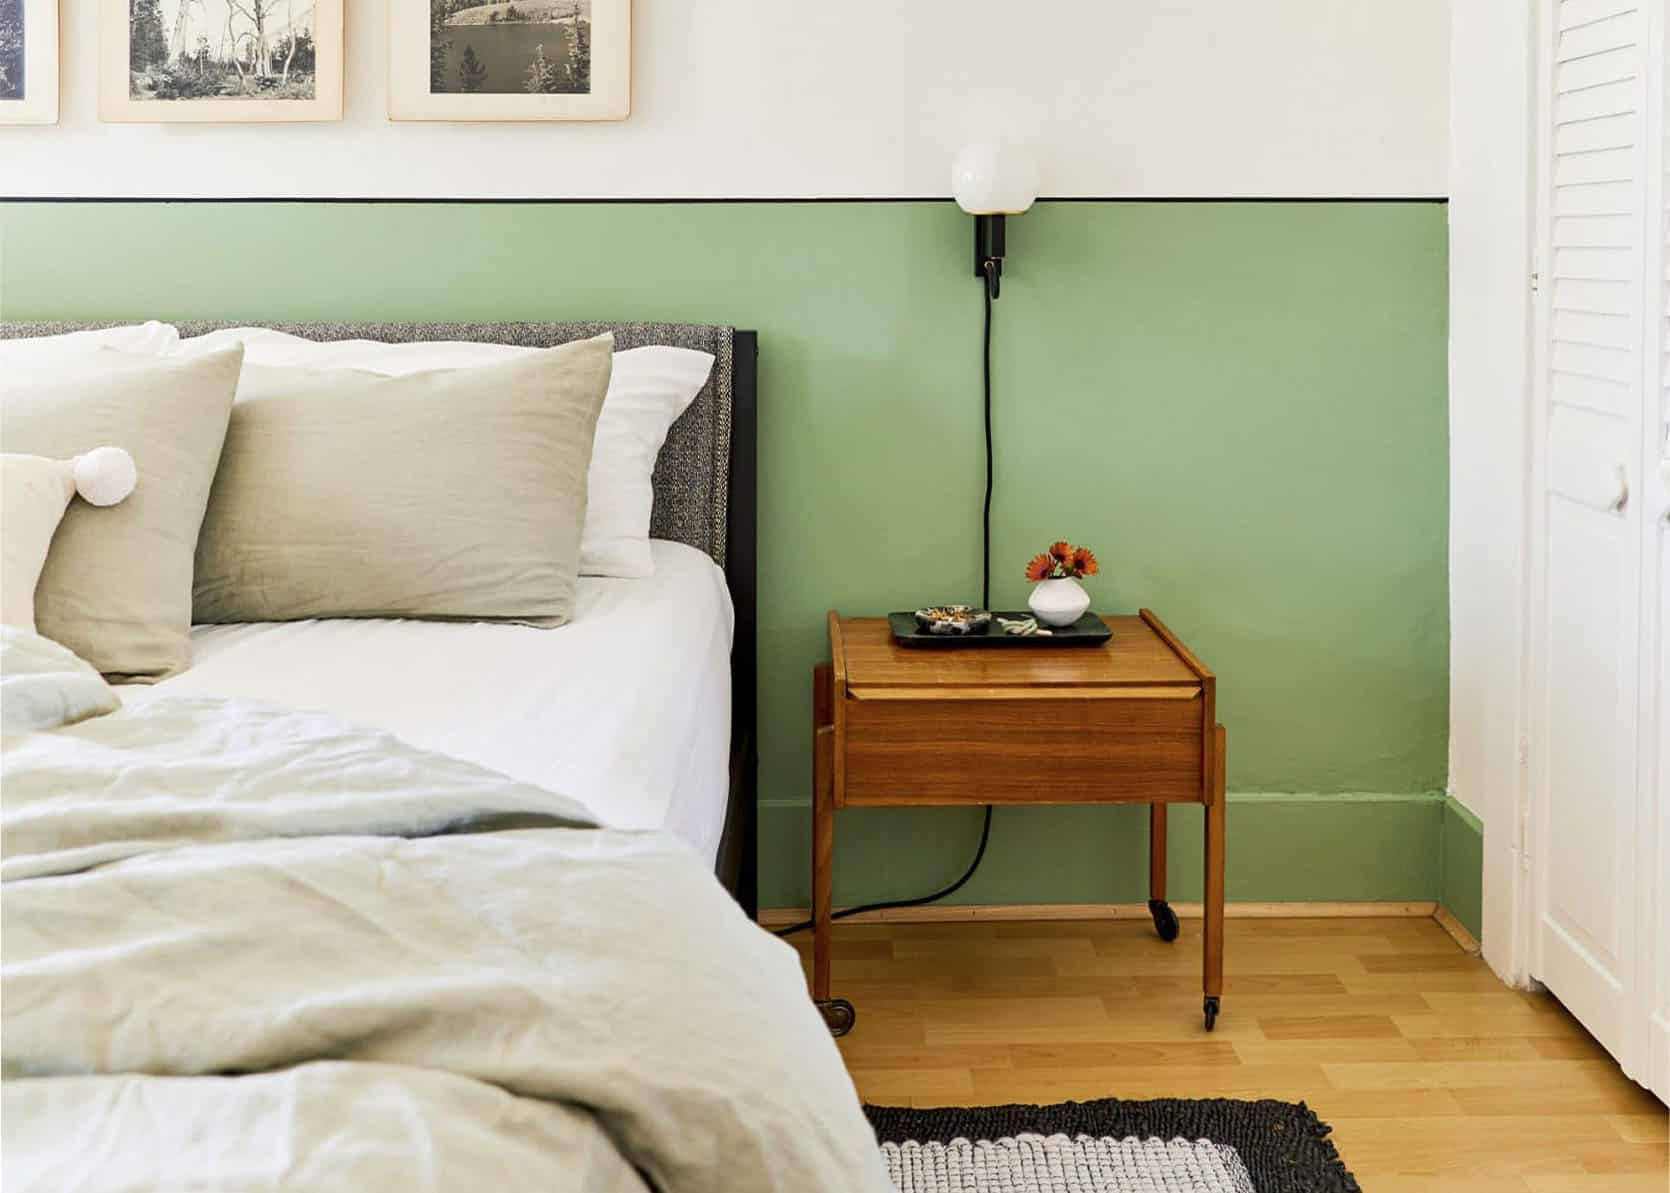 Budget Power Couples Beds And Nightstands For Every Style All Under 600 Emily Henderson